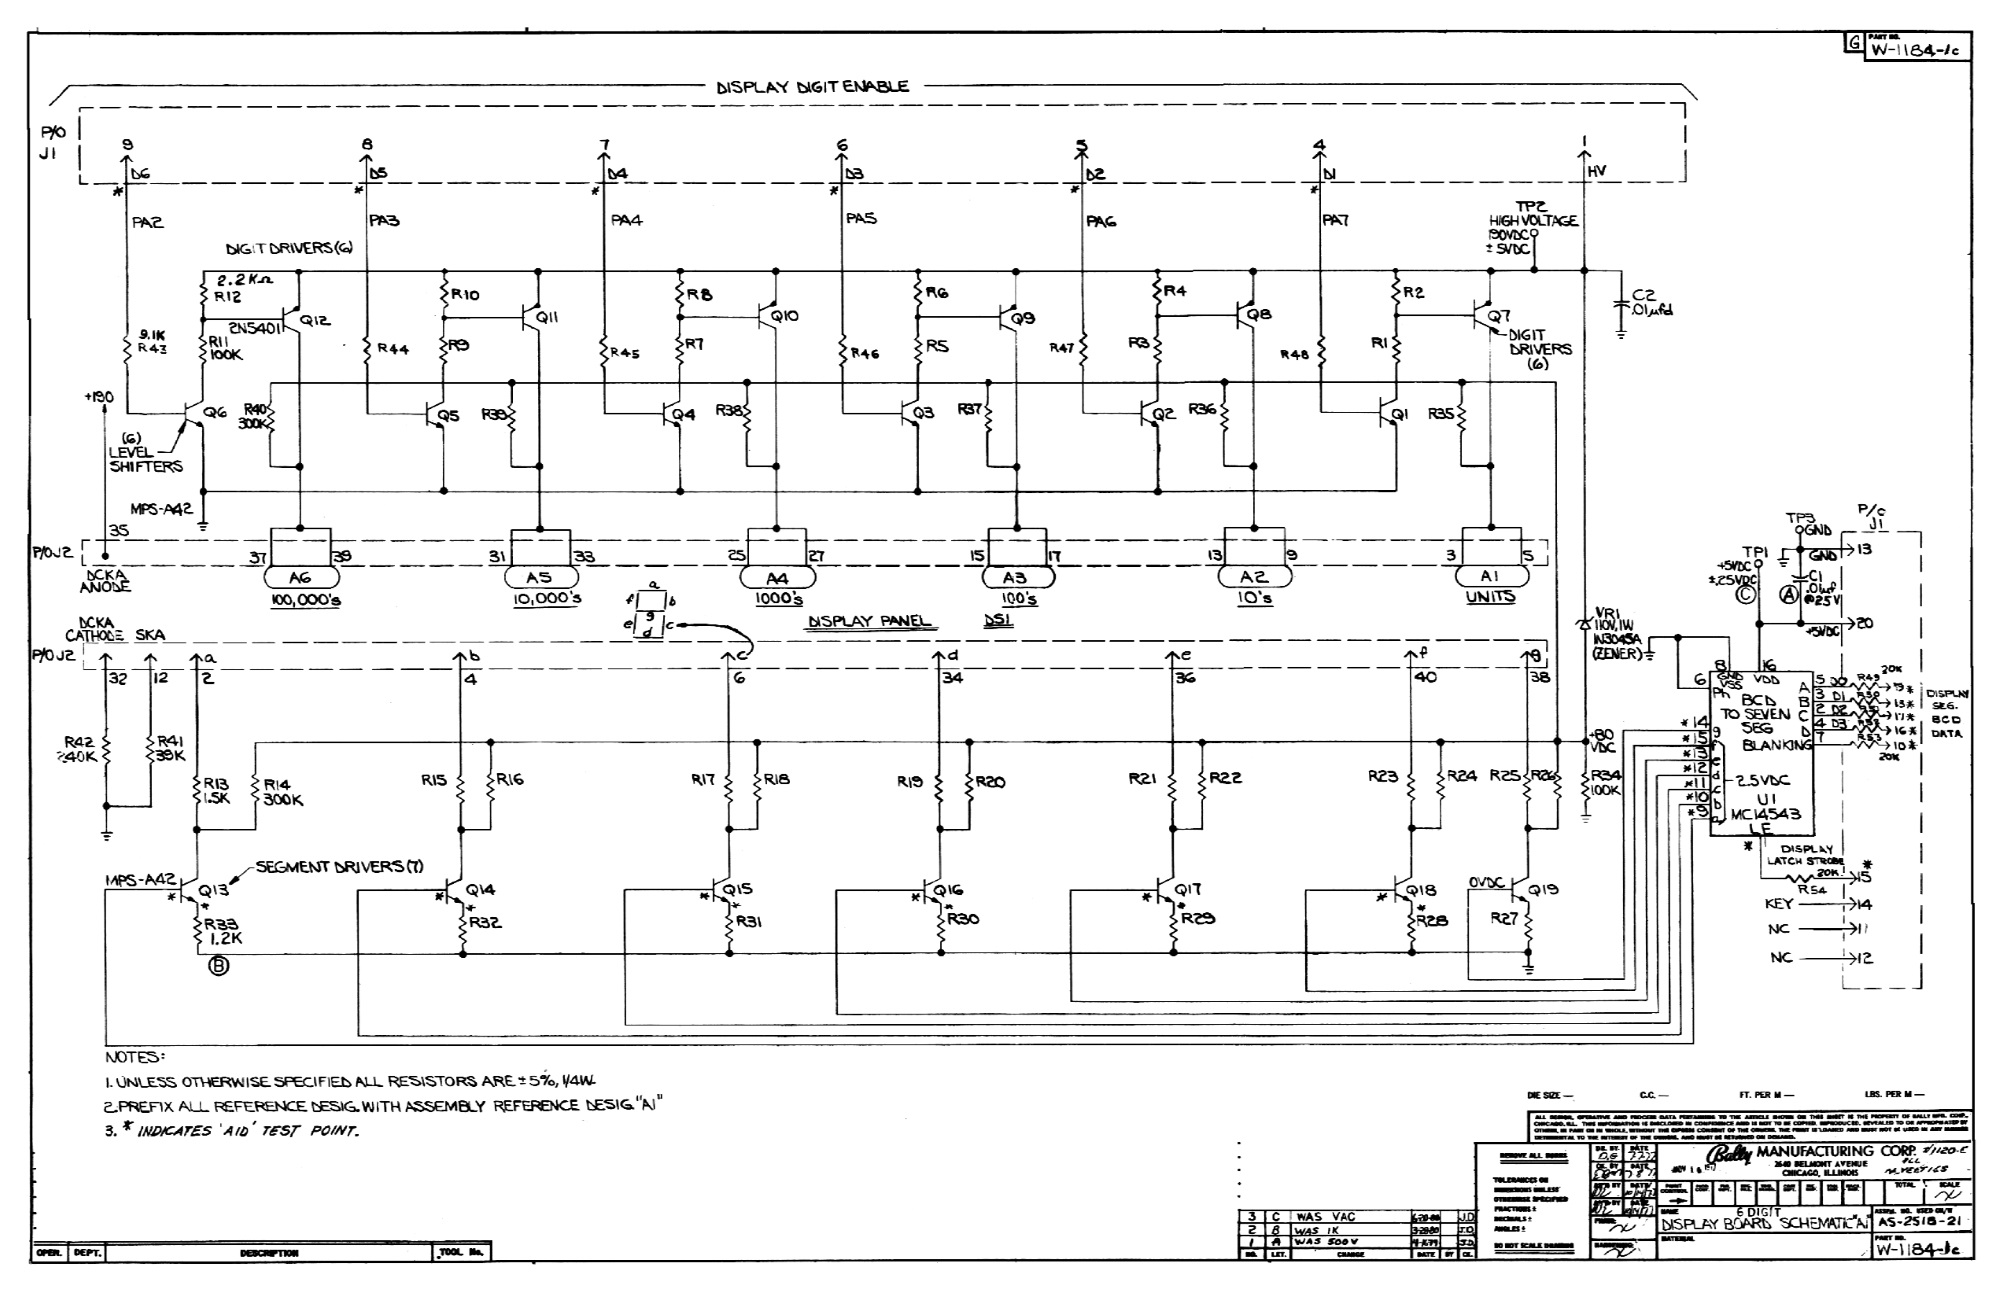 Classic Bally Stern Display Schematics